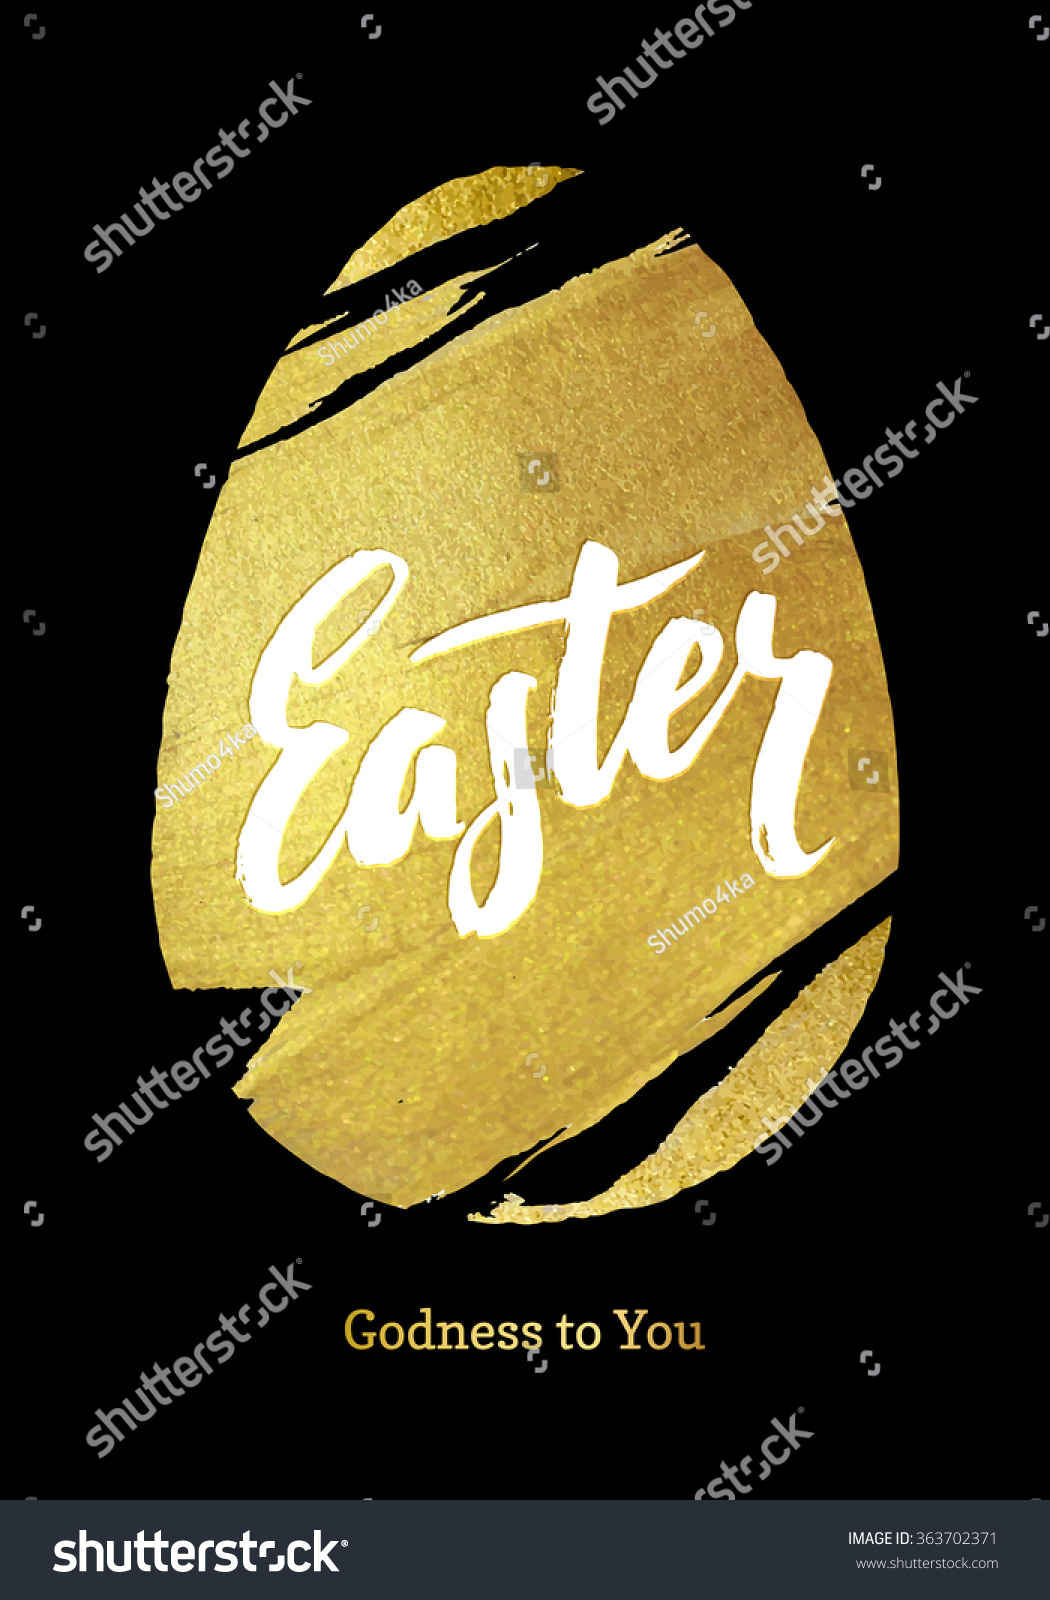 Gold Foil Happy Easter Greeting Egg Stock Vector Royalty Free